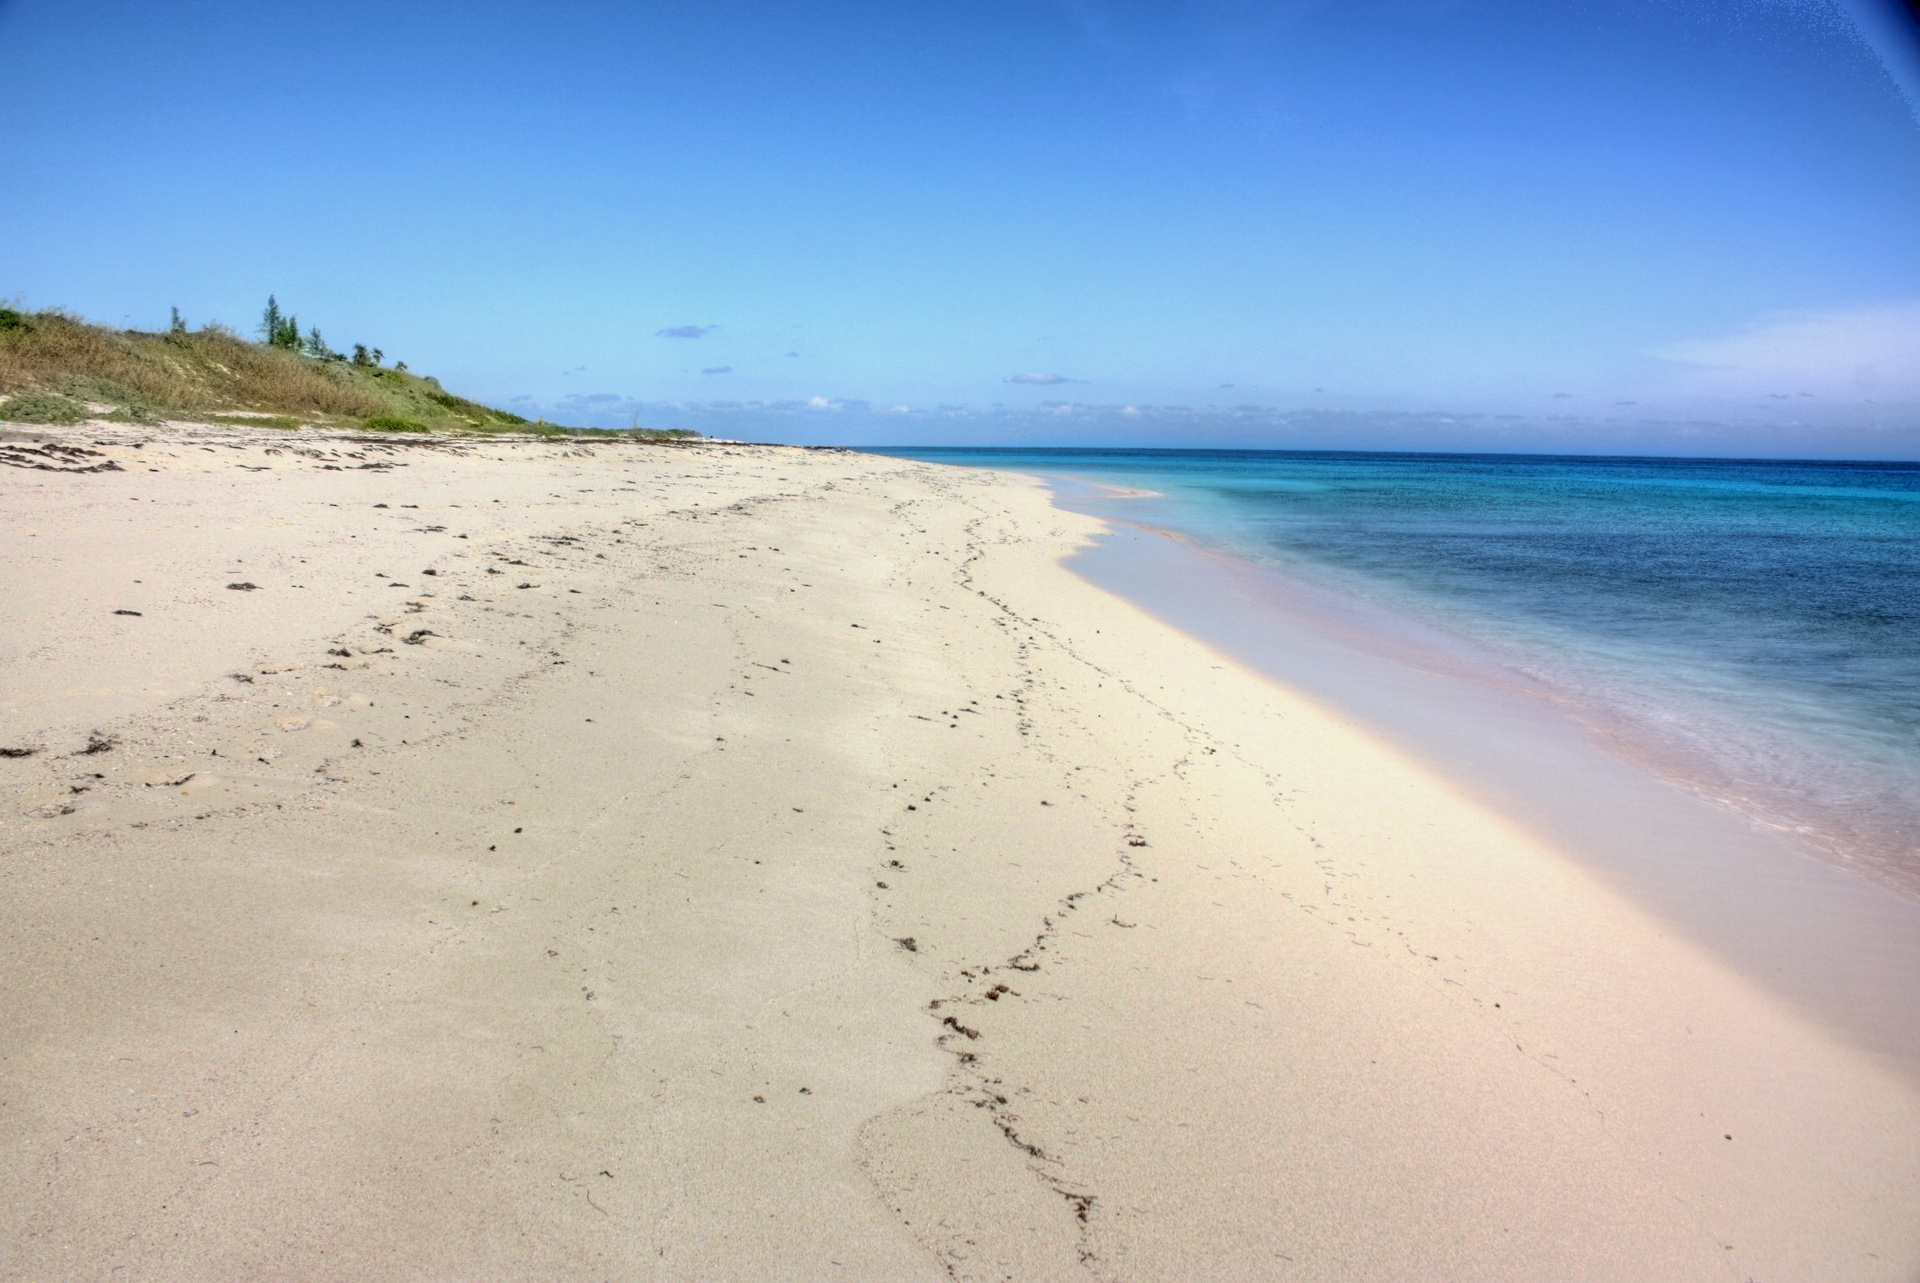 Land for Sale at Prime 11 Acre Beachfront Estate near Winding Bay, Abaco Island Little Harbour, Abaco, Bahamas